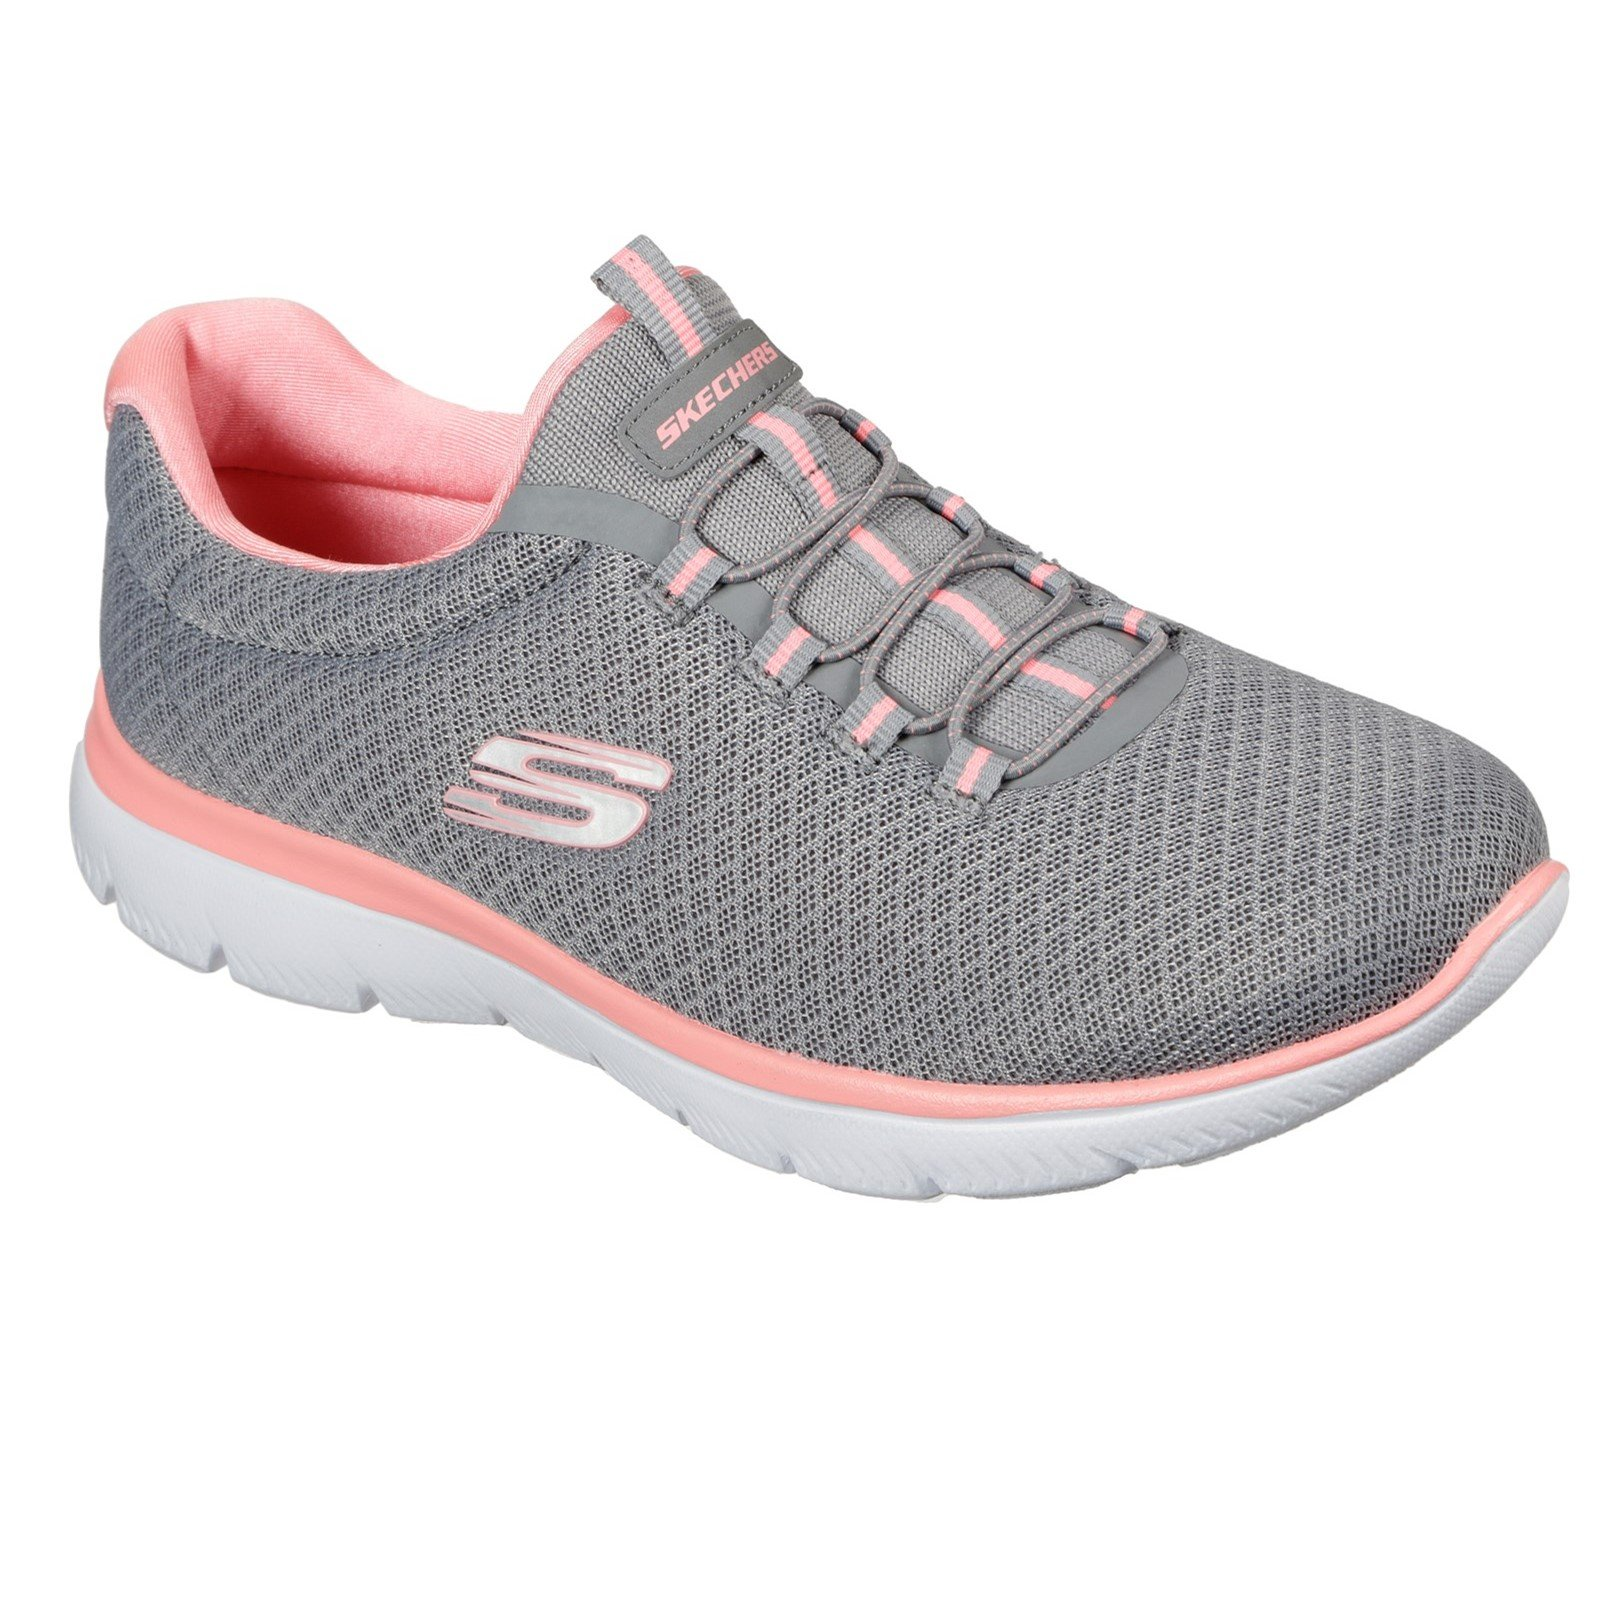 Skechers Women's Summits Slip On Trainer Various Colours 30708 - Grey/Pink 5